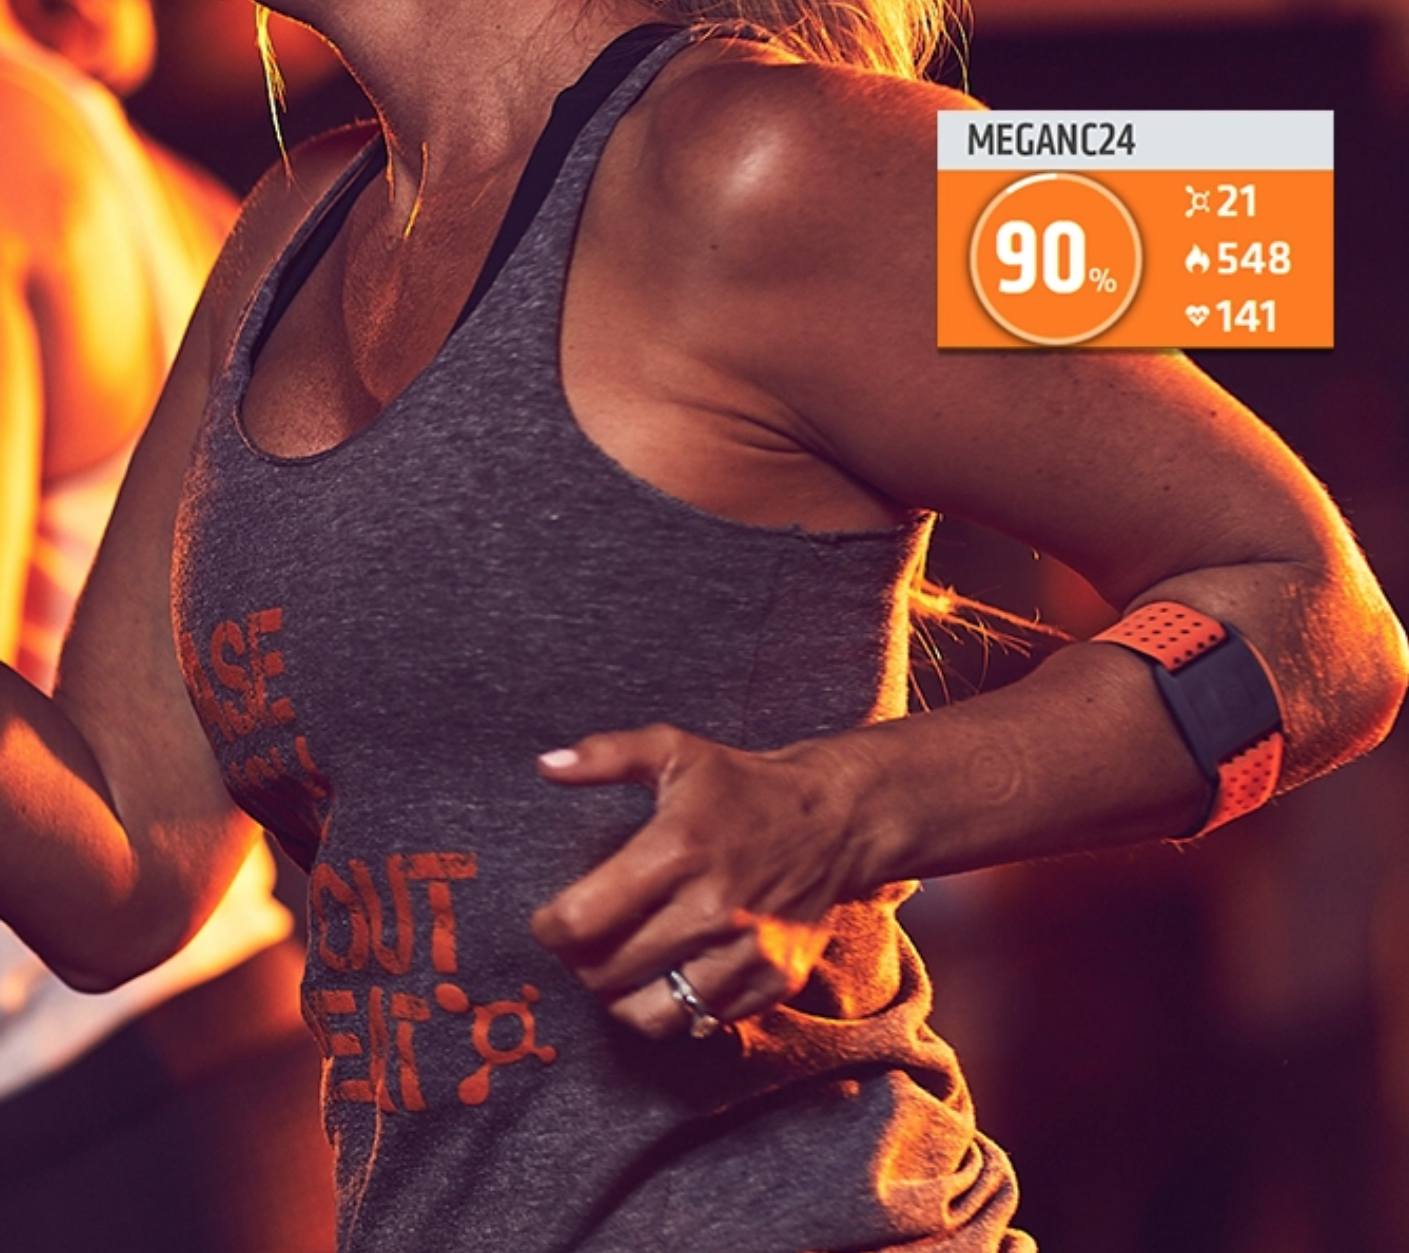 HEART-RATE BASED INTERVAL TRAINING - Backed by the science of Excess Post-Exercise Oxygen Consumption (or EPOC), Orangetheory's heart rate monitored training is designed to maintain a target zone that stimulates metabolism and increases energy. We call it the afterburn. Our members burn an estimated 500 to 1,000 calories in 60 minutes.** And keep burning calories for up to 36 hours.**Including the afterburn. Individual results may vary.** Based on intensity level, participants can burn an expected average of 15-20% more calories above their standard resting calorie burn.